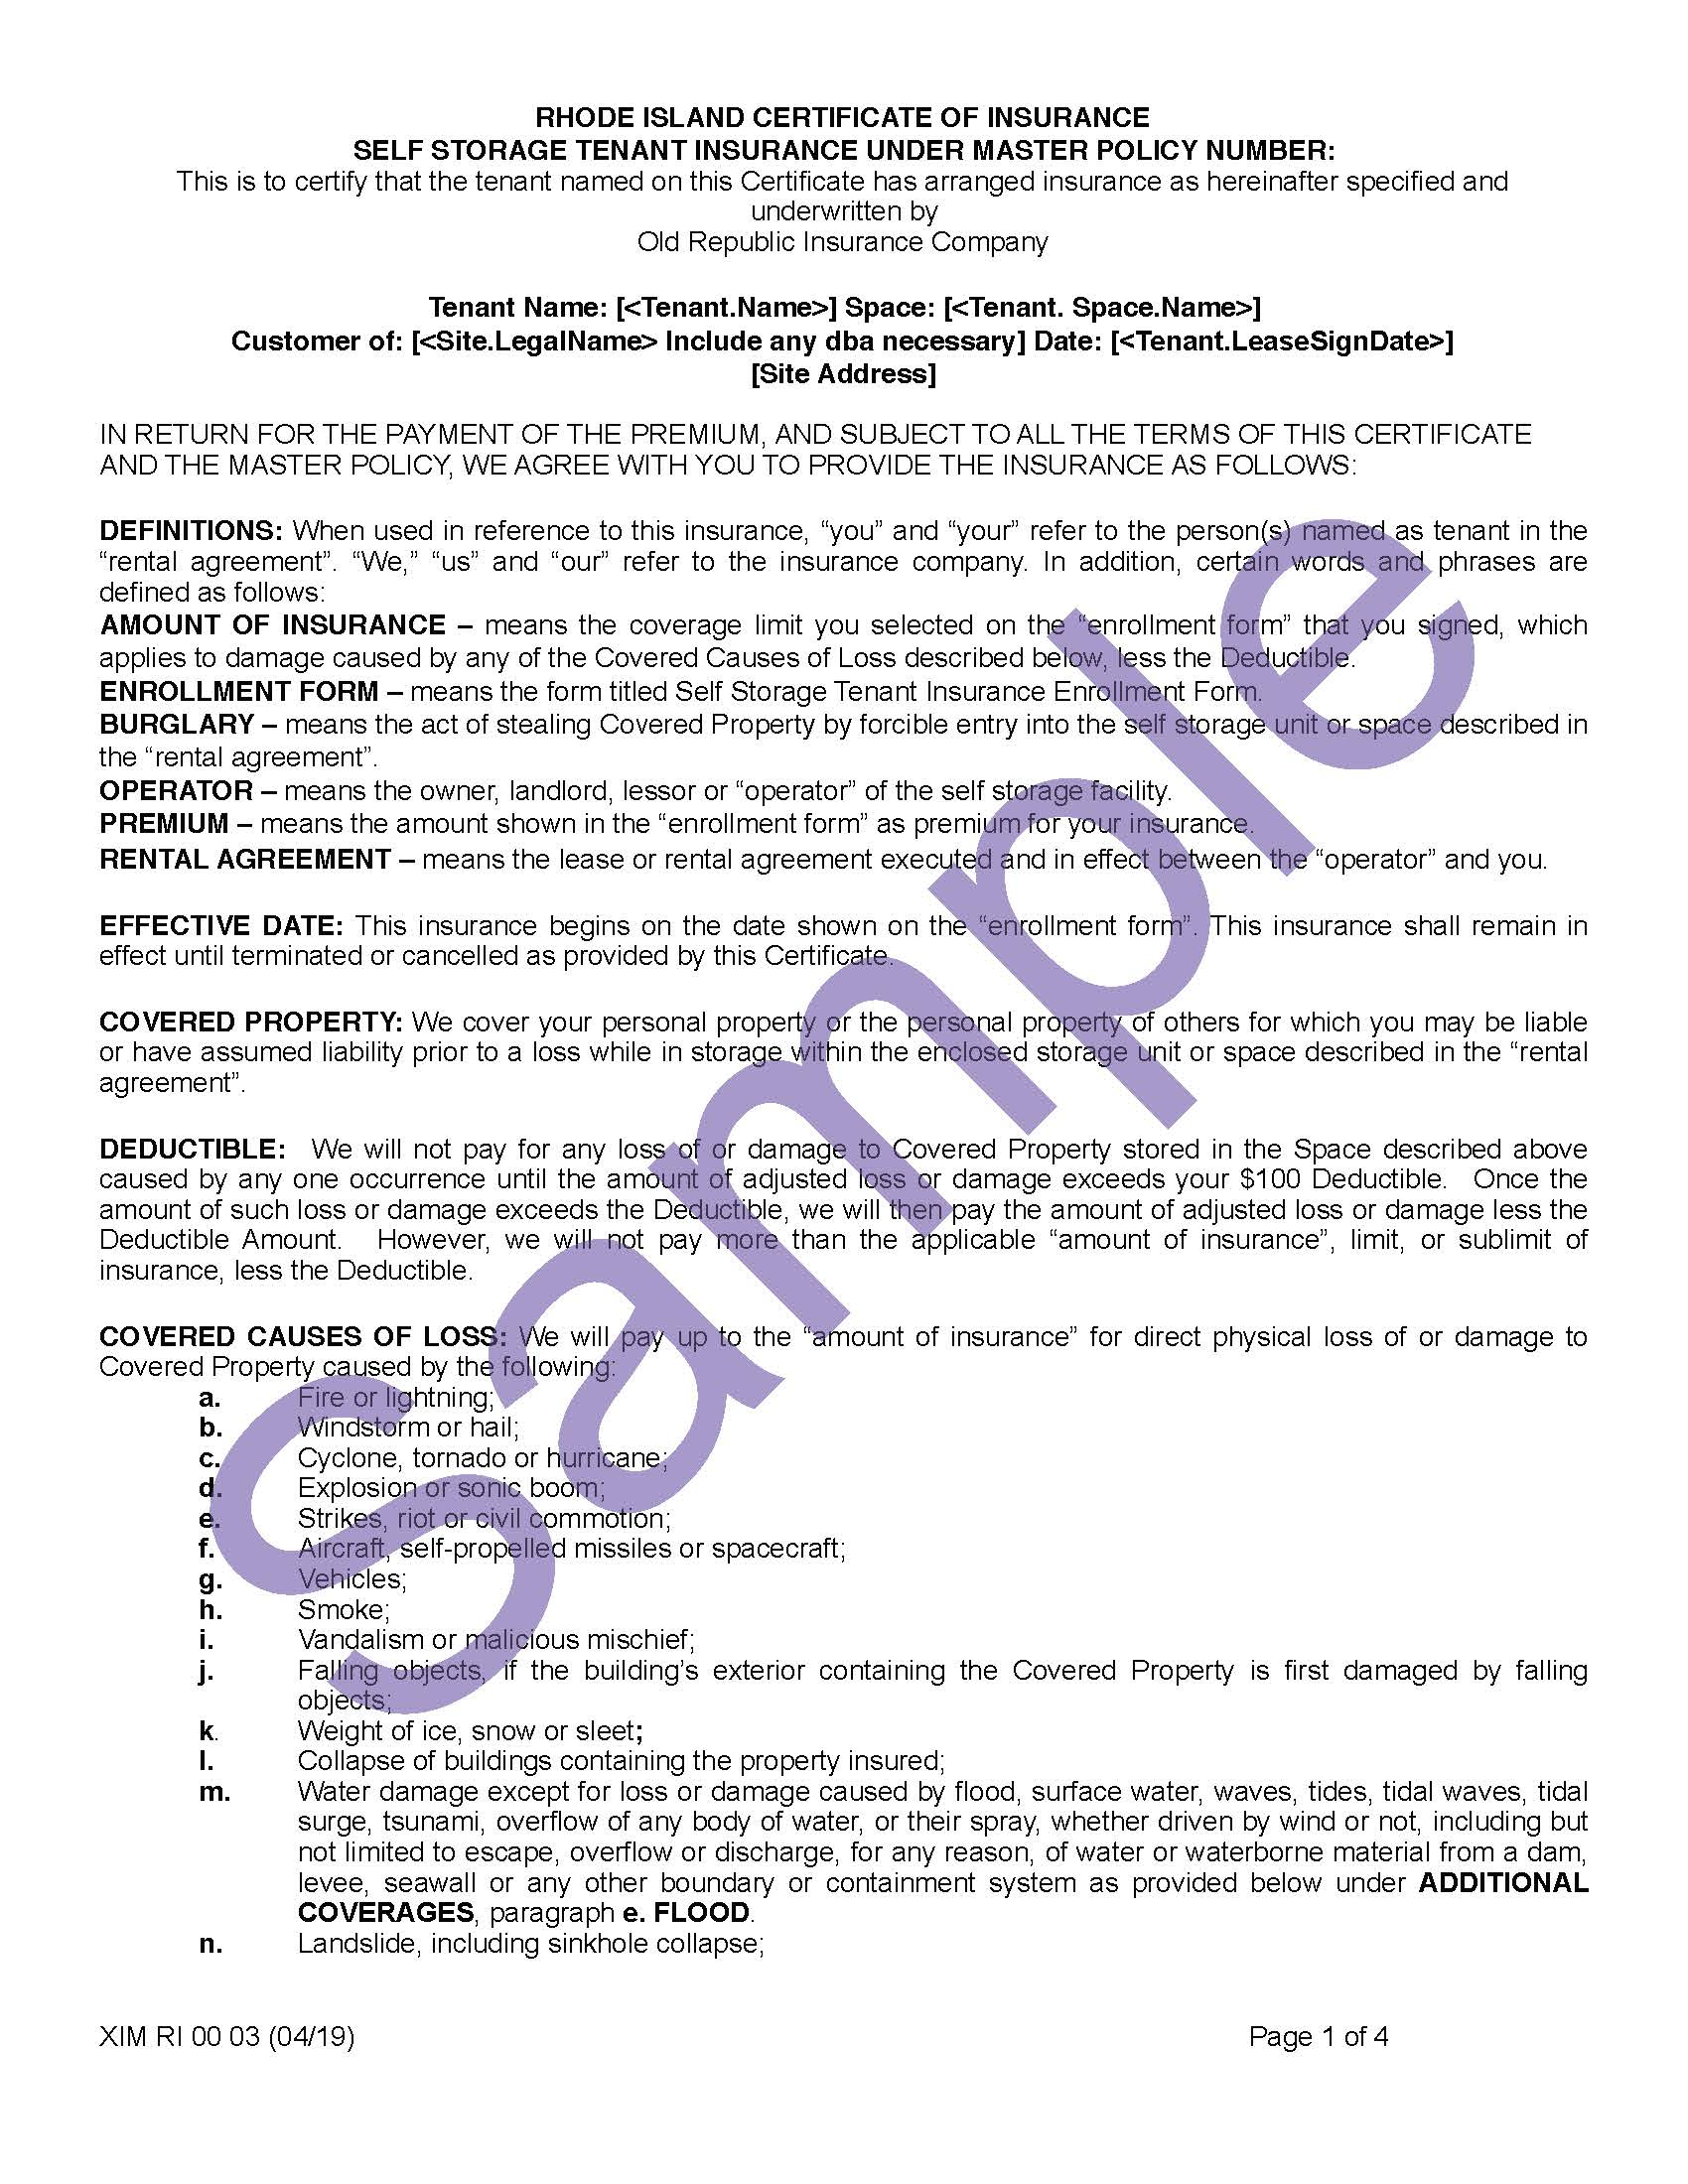 XIM RI 00 03 04 19 Rhode Island Certificate of InsuranceSample_Page_1.jpg